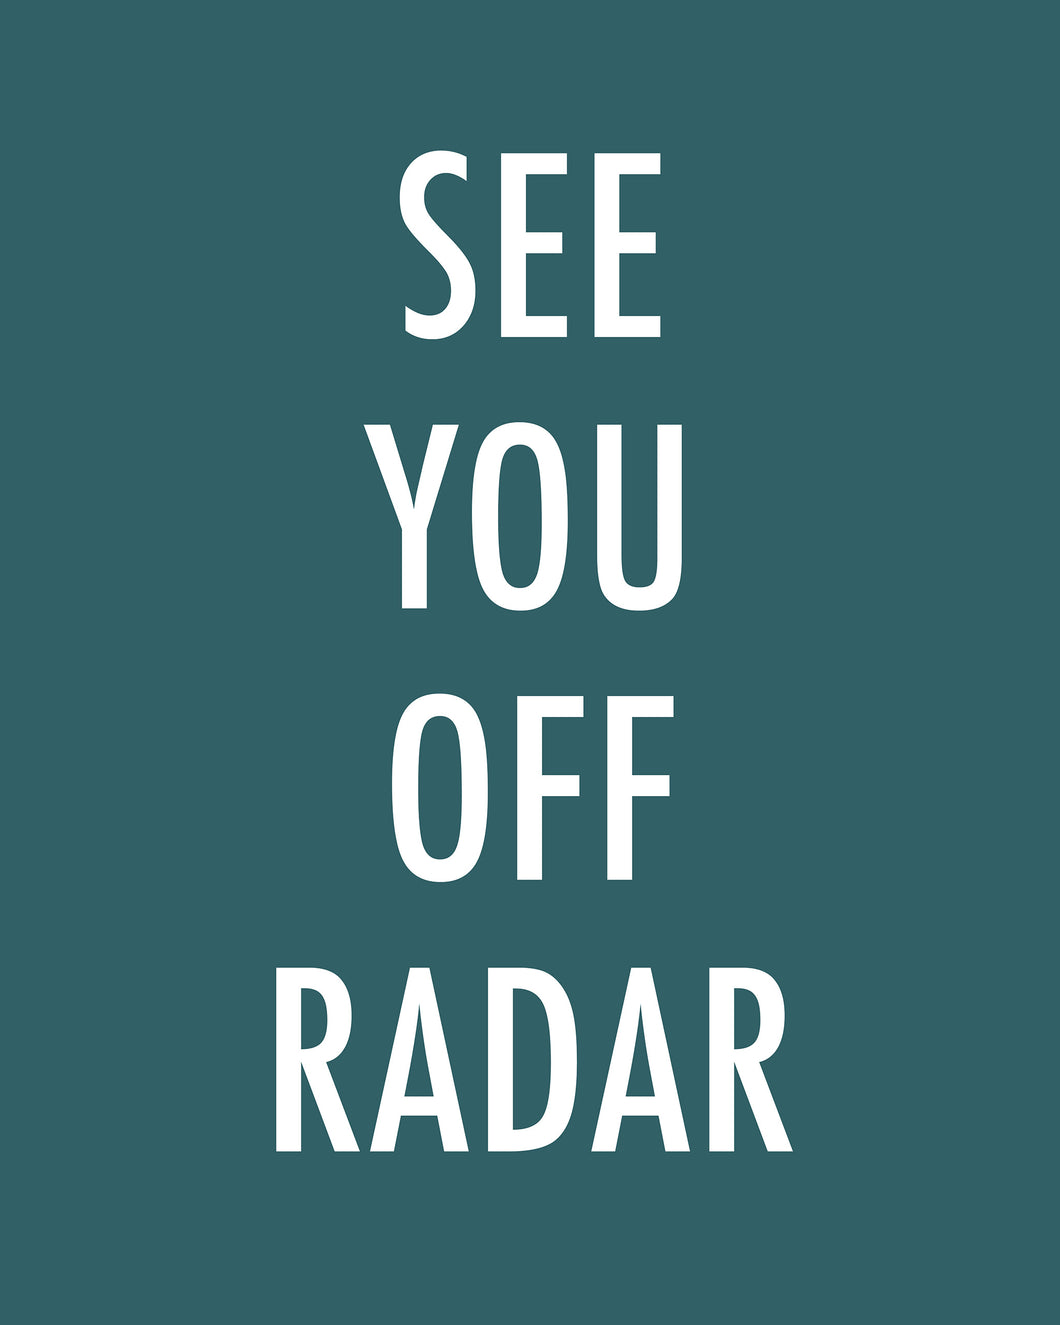 See You Off Radar - Color Pop Print, 20x24